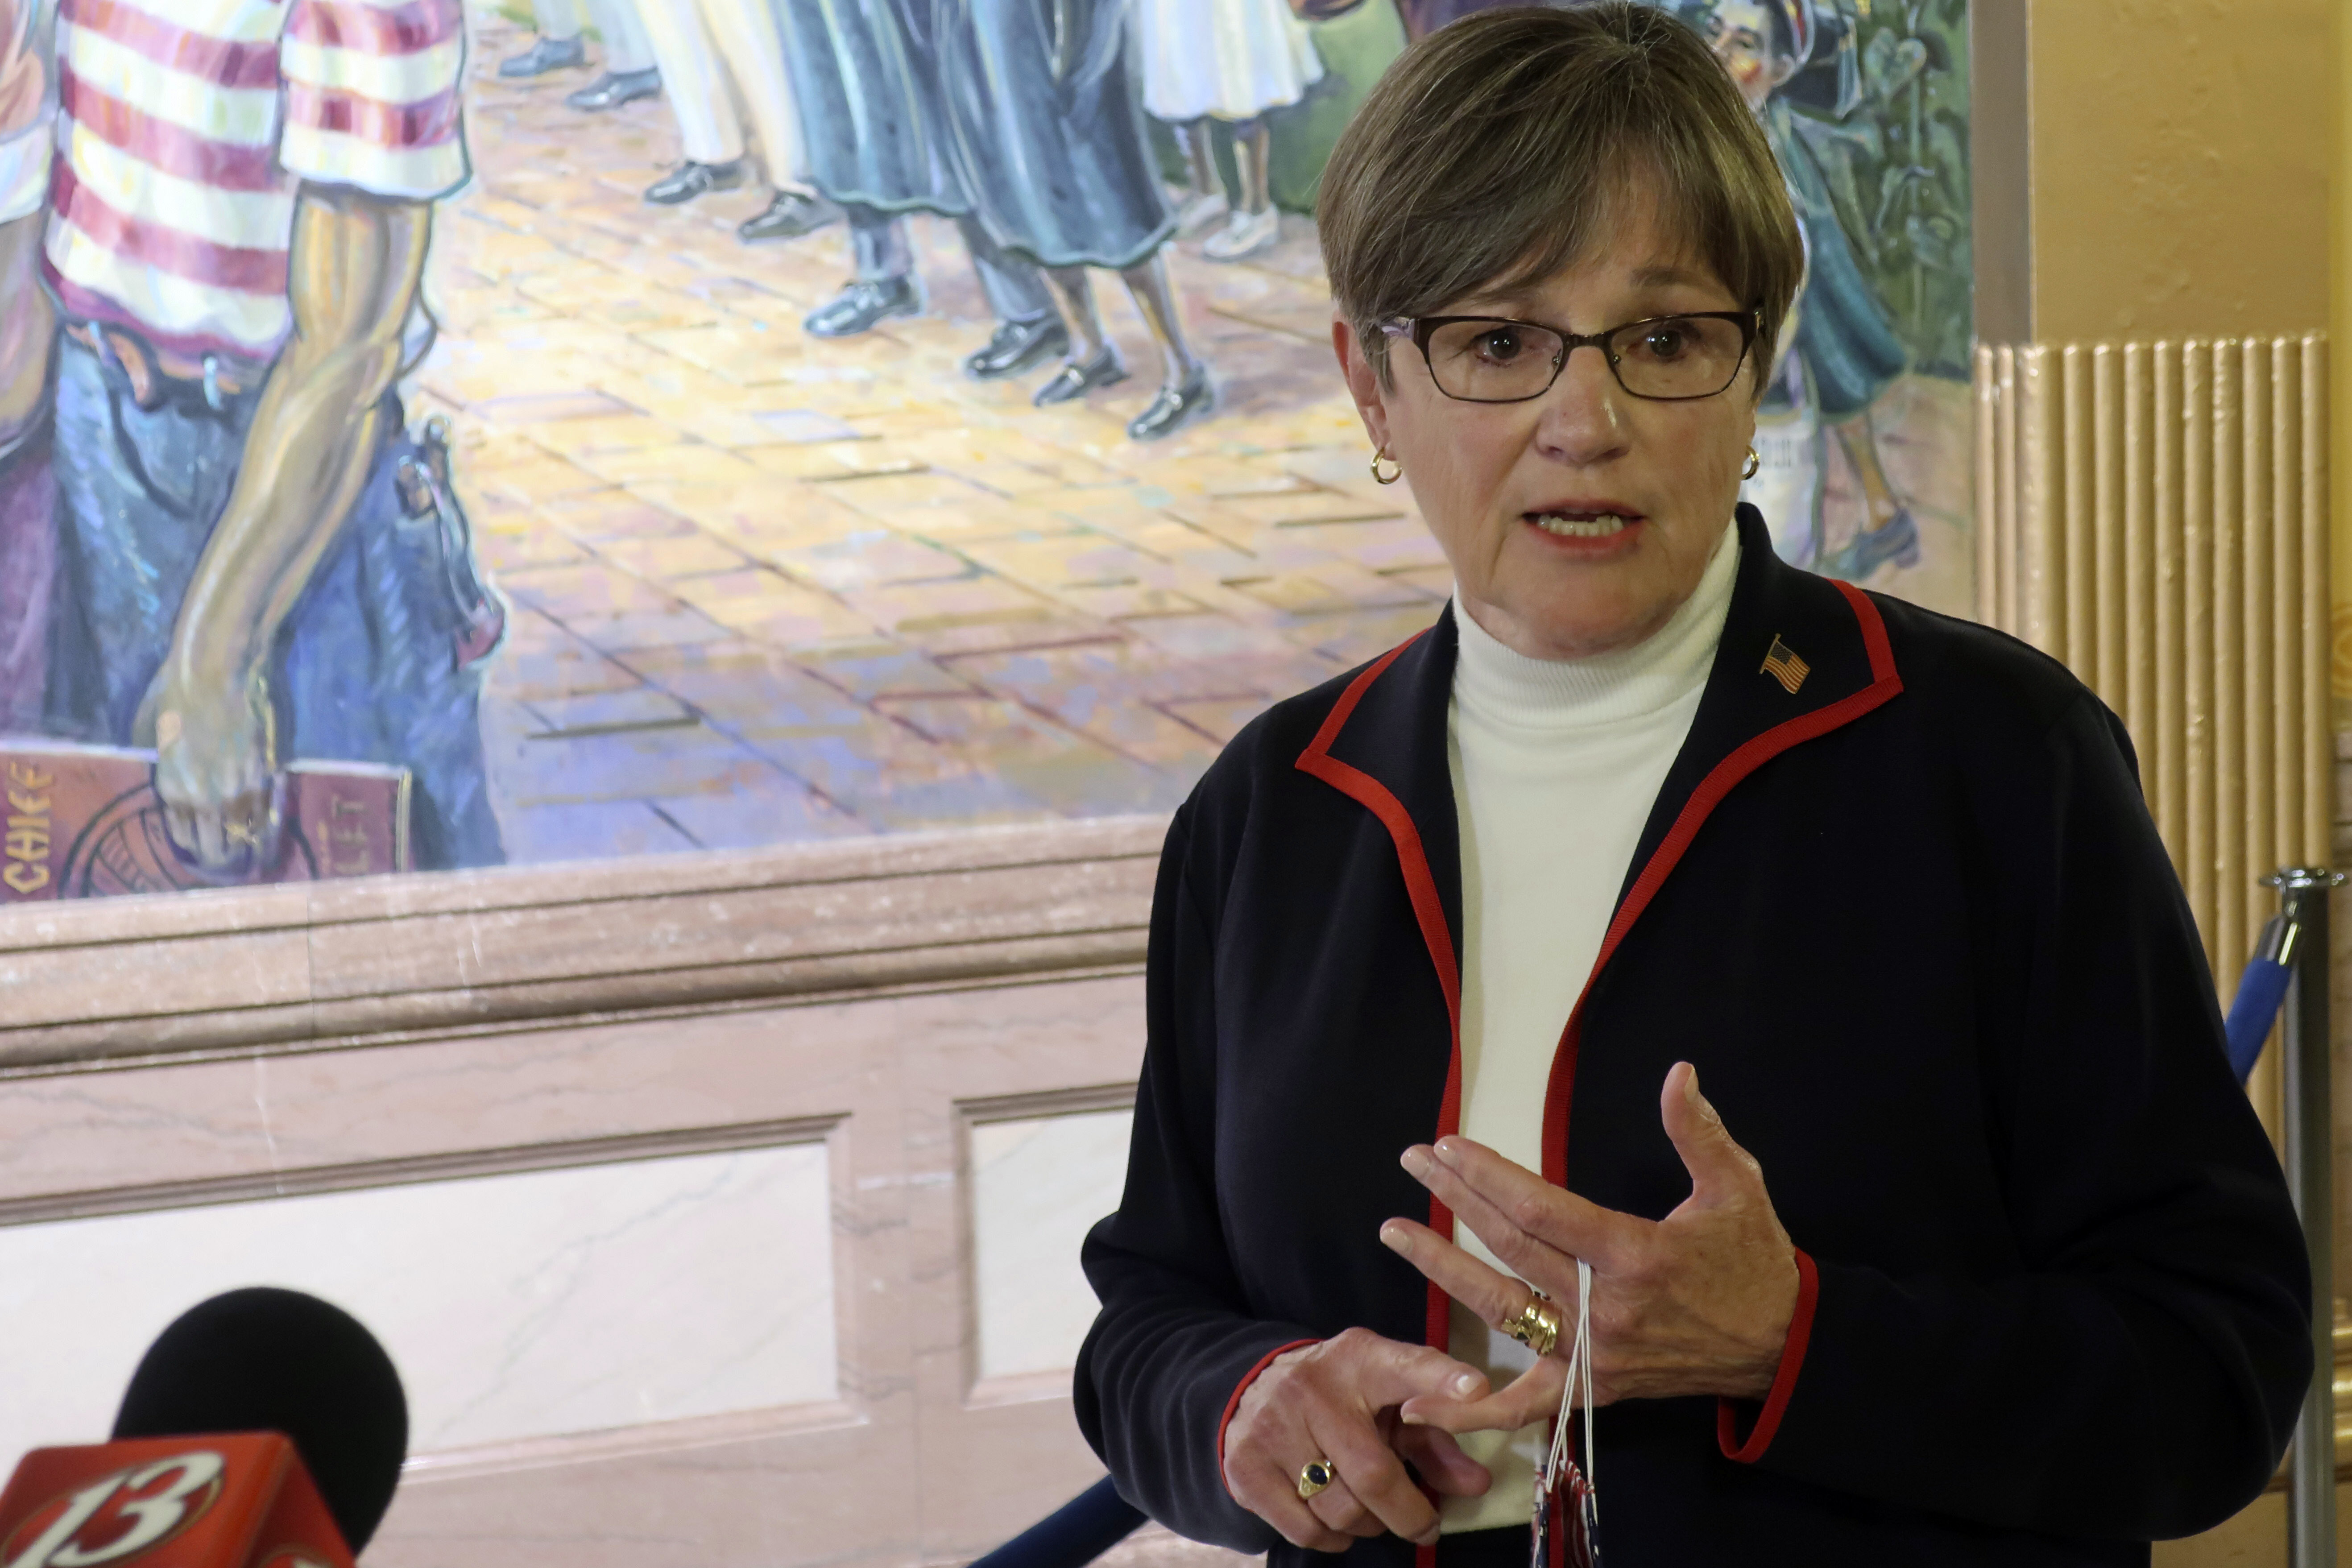 Kansas Gov. Laura Kelly answers questions from reporters about the coronavirus pandemic after a meeting with legislative leaders, Thursday, July 2, 2020, at the Statehouse in Topeka, Kan. Kelly has issued an order to require people to wear masks in public and at their workplaces.